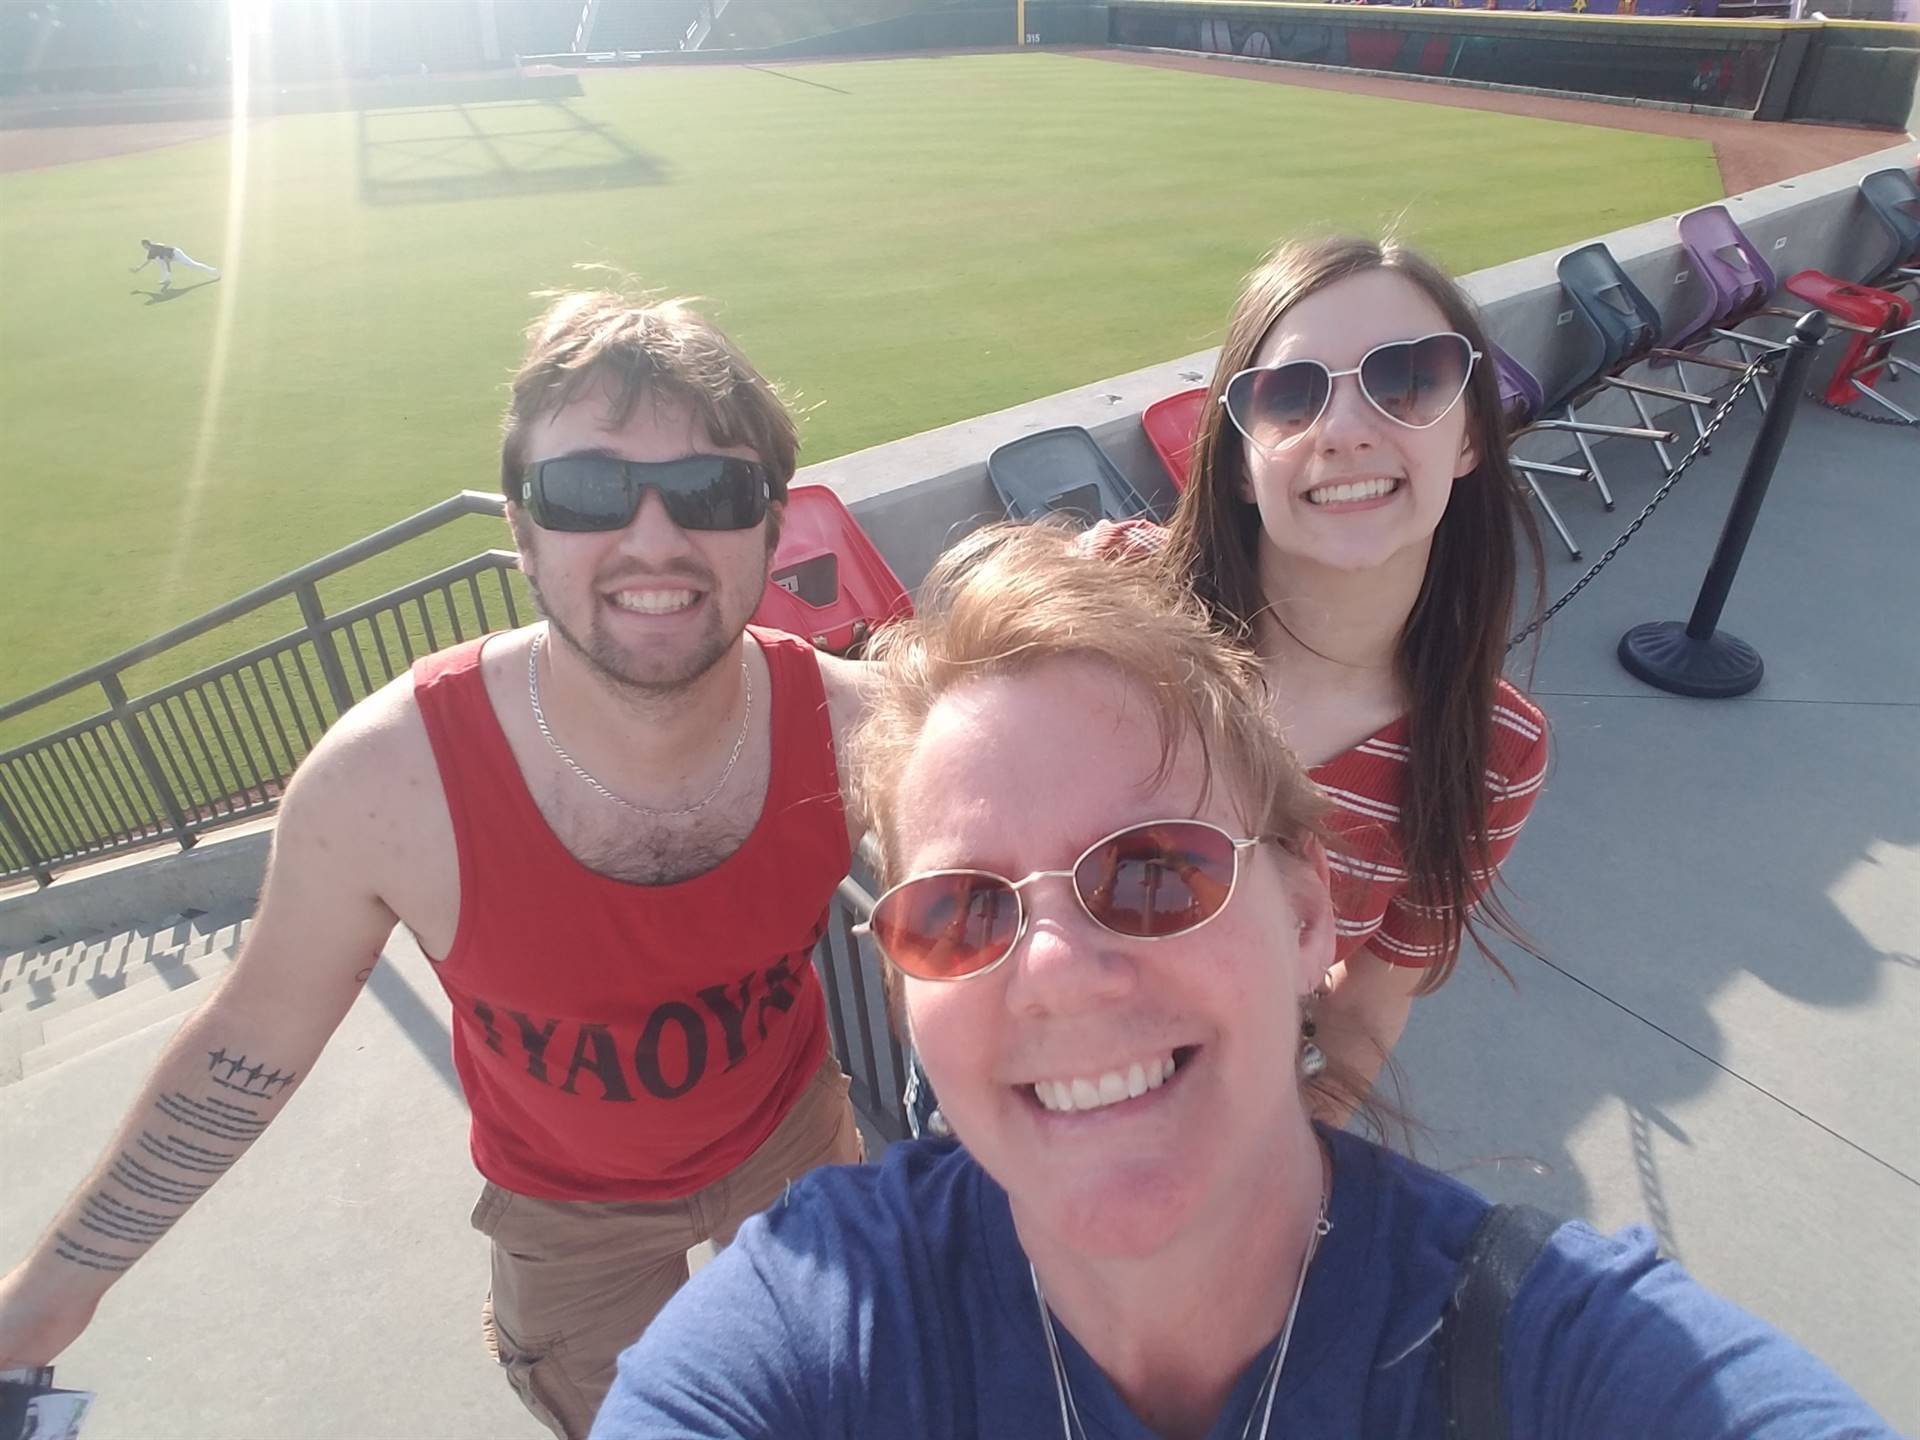 My Son Nate, his fiance Payton and me at a Durham Bulls baseball game!